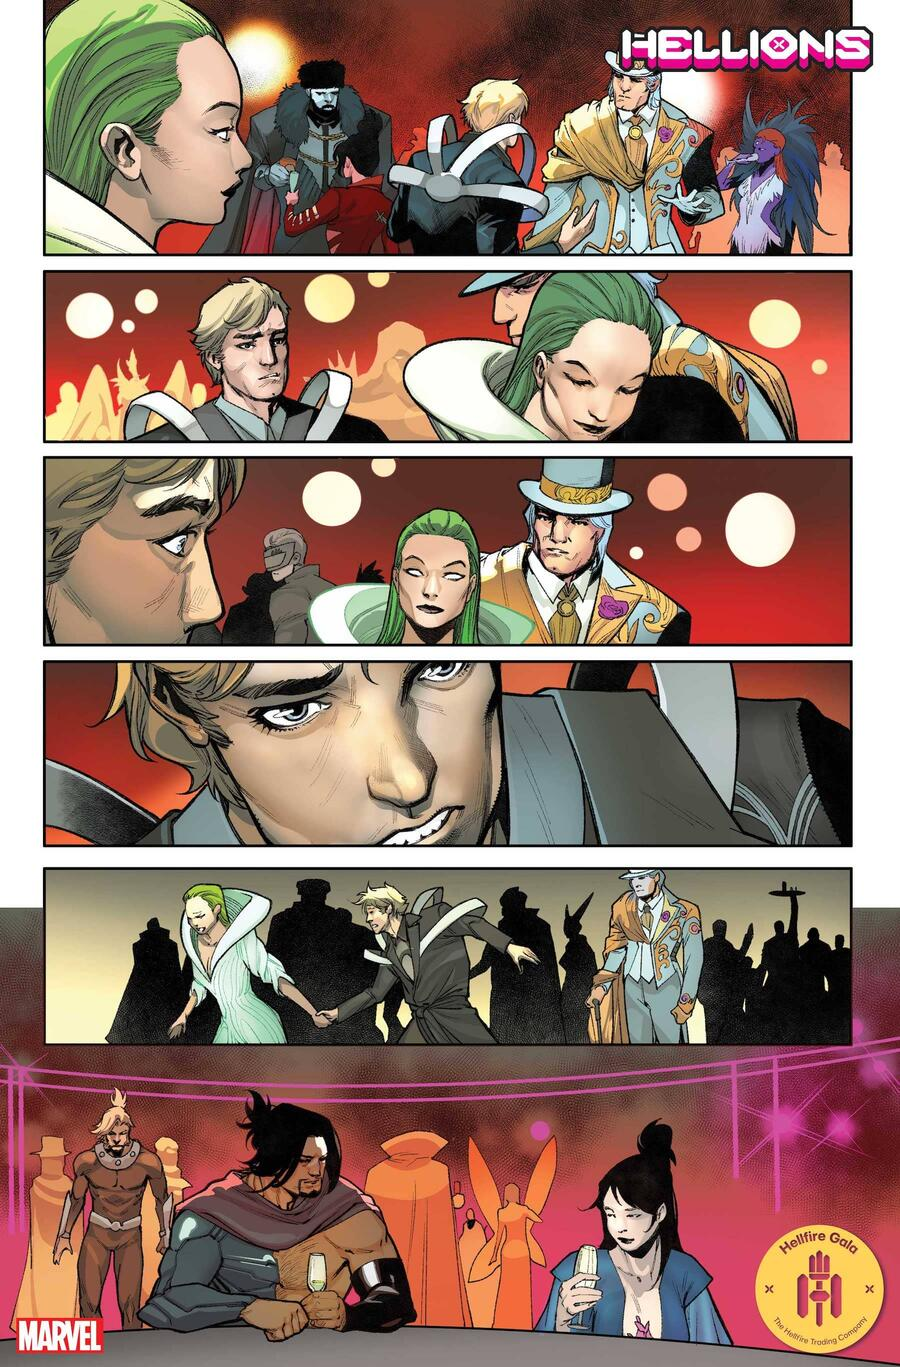 HELLIONS #12 preview art by Stephen Segovia with colors by David Curiel